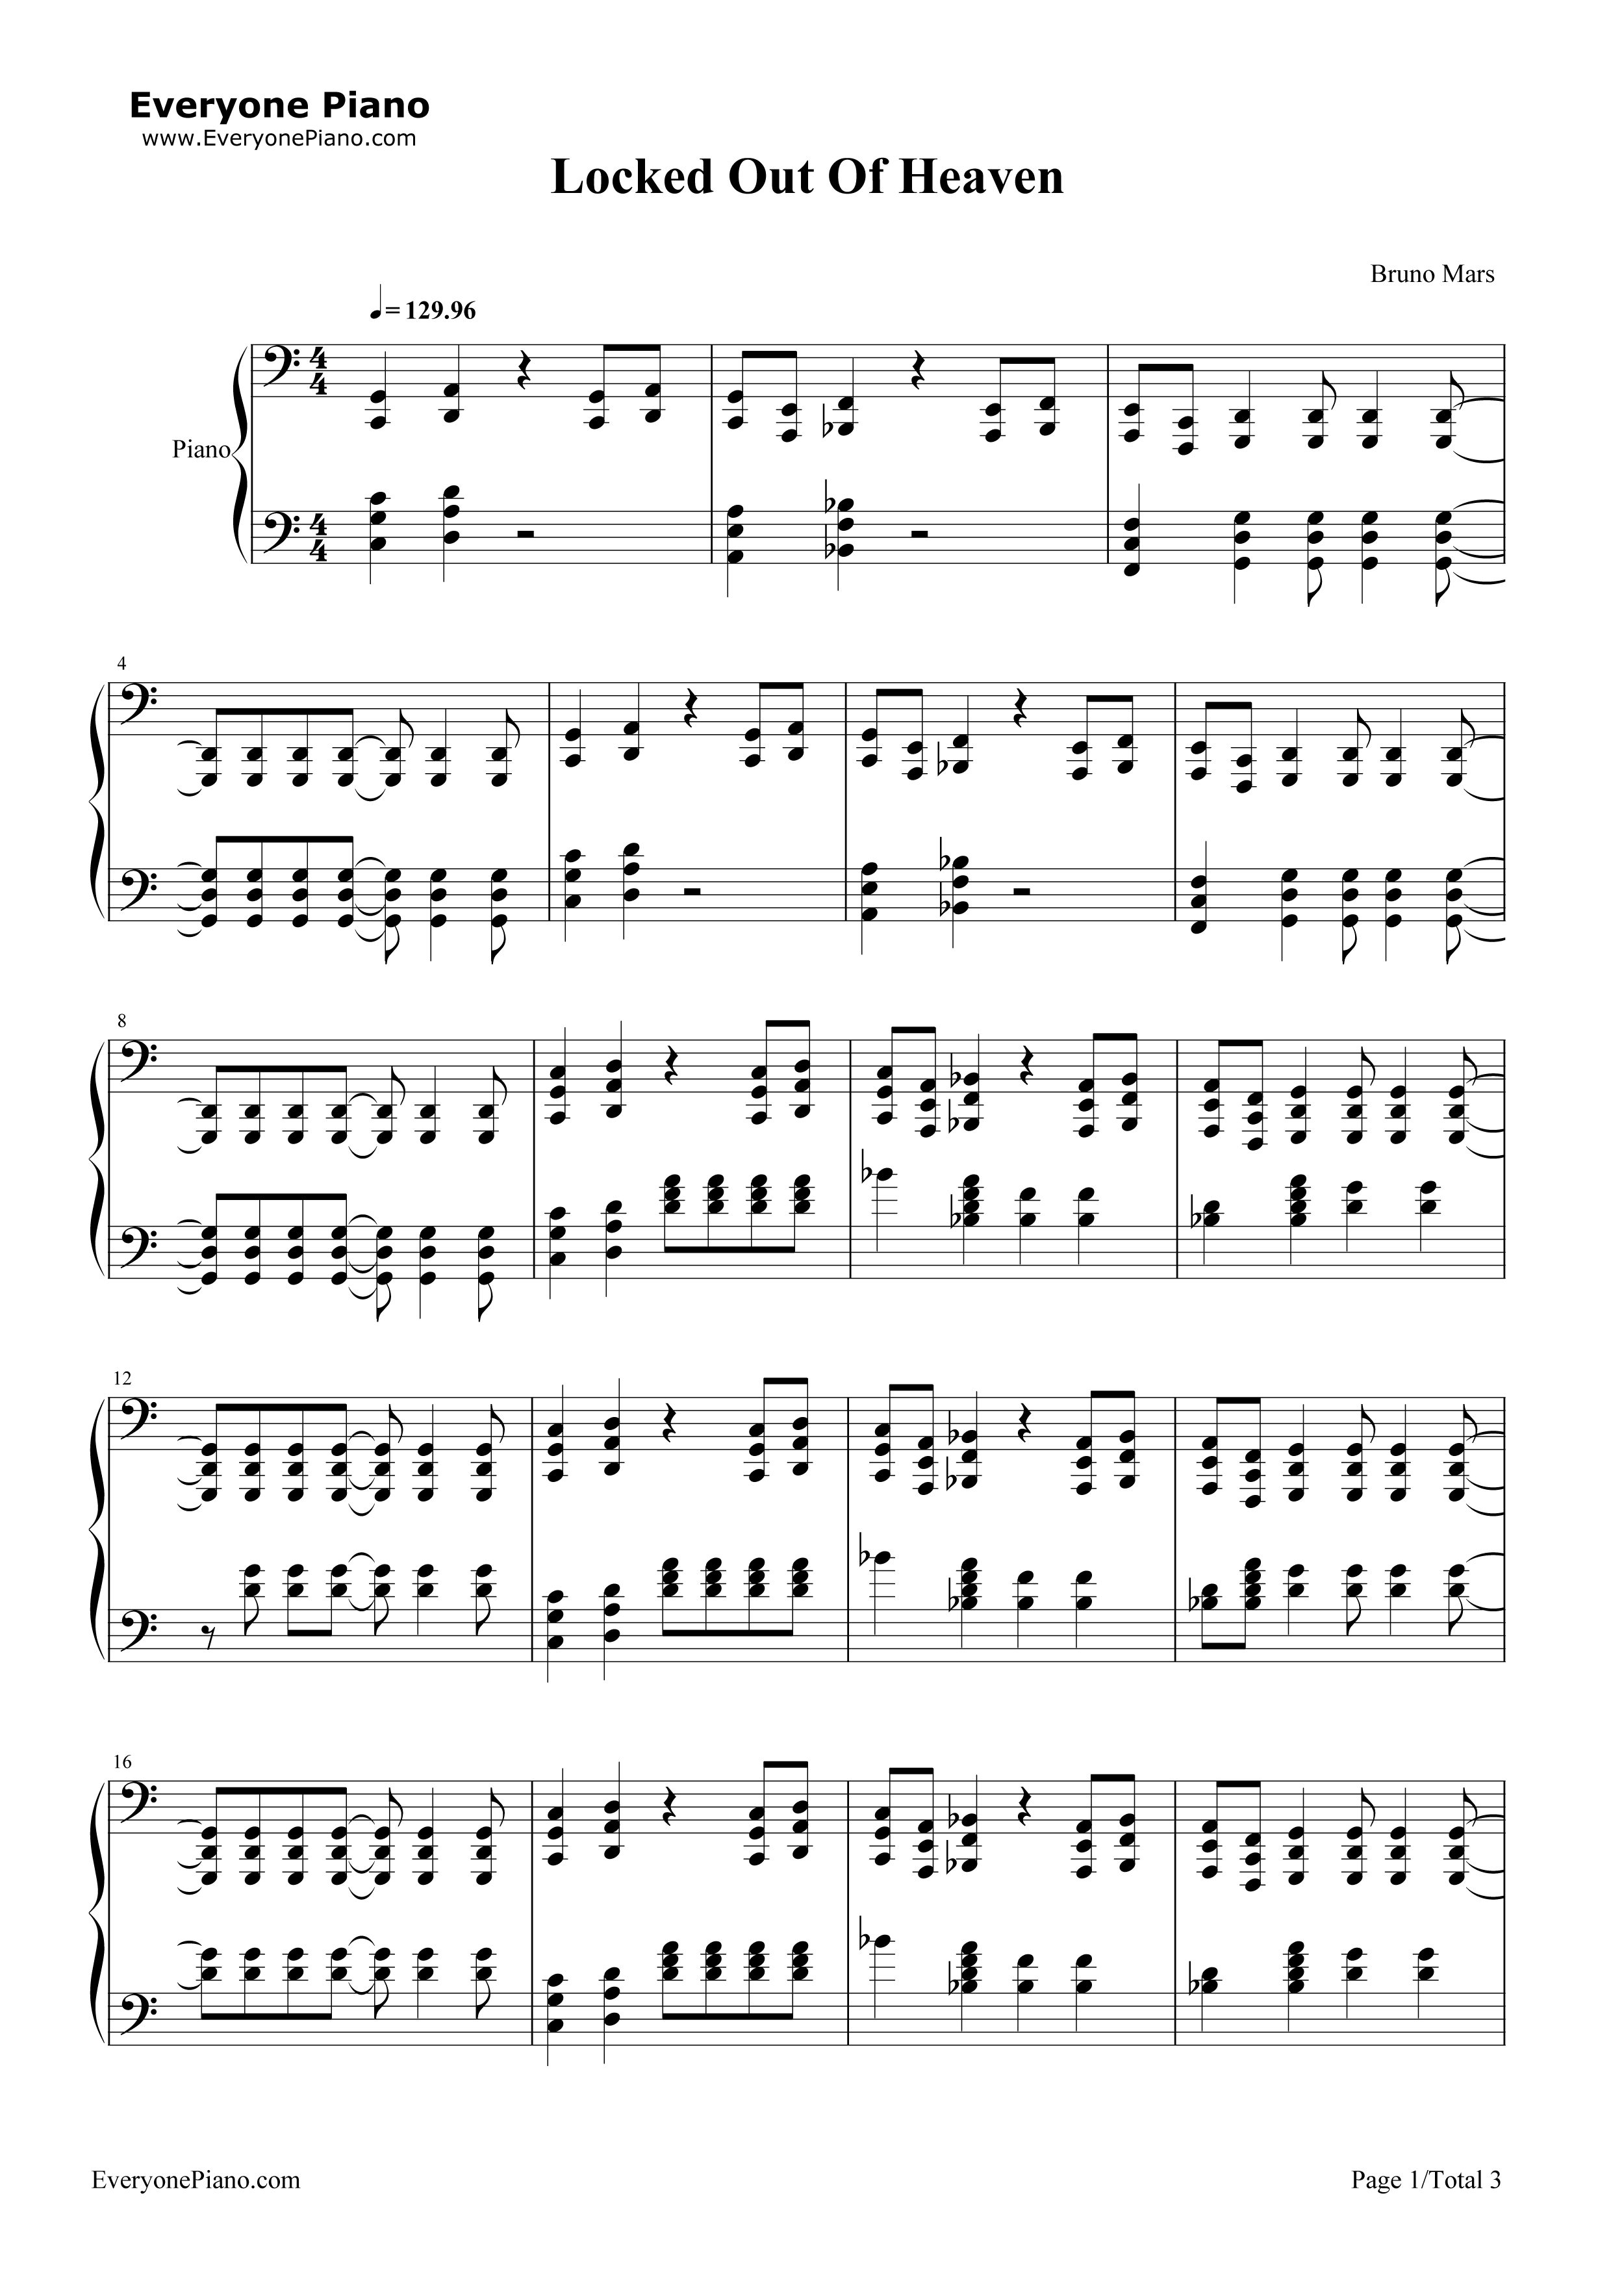 Locked Out Of Heaven-Bruno Mars Stave Preview 1-Free Piano Sheet Music u0026 Piano Chords